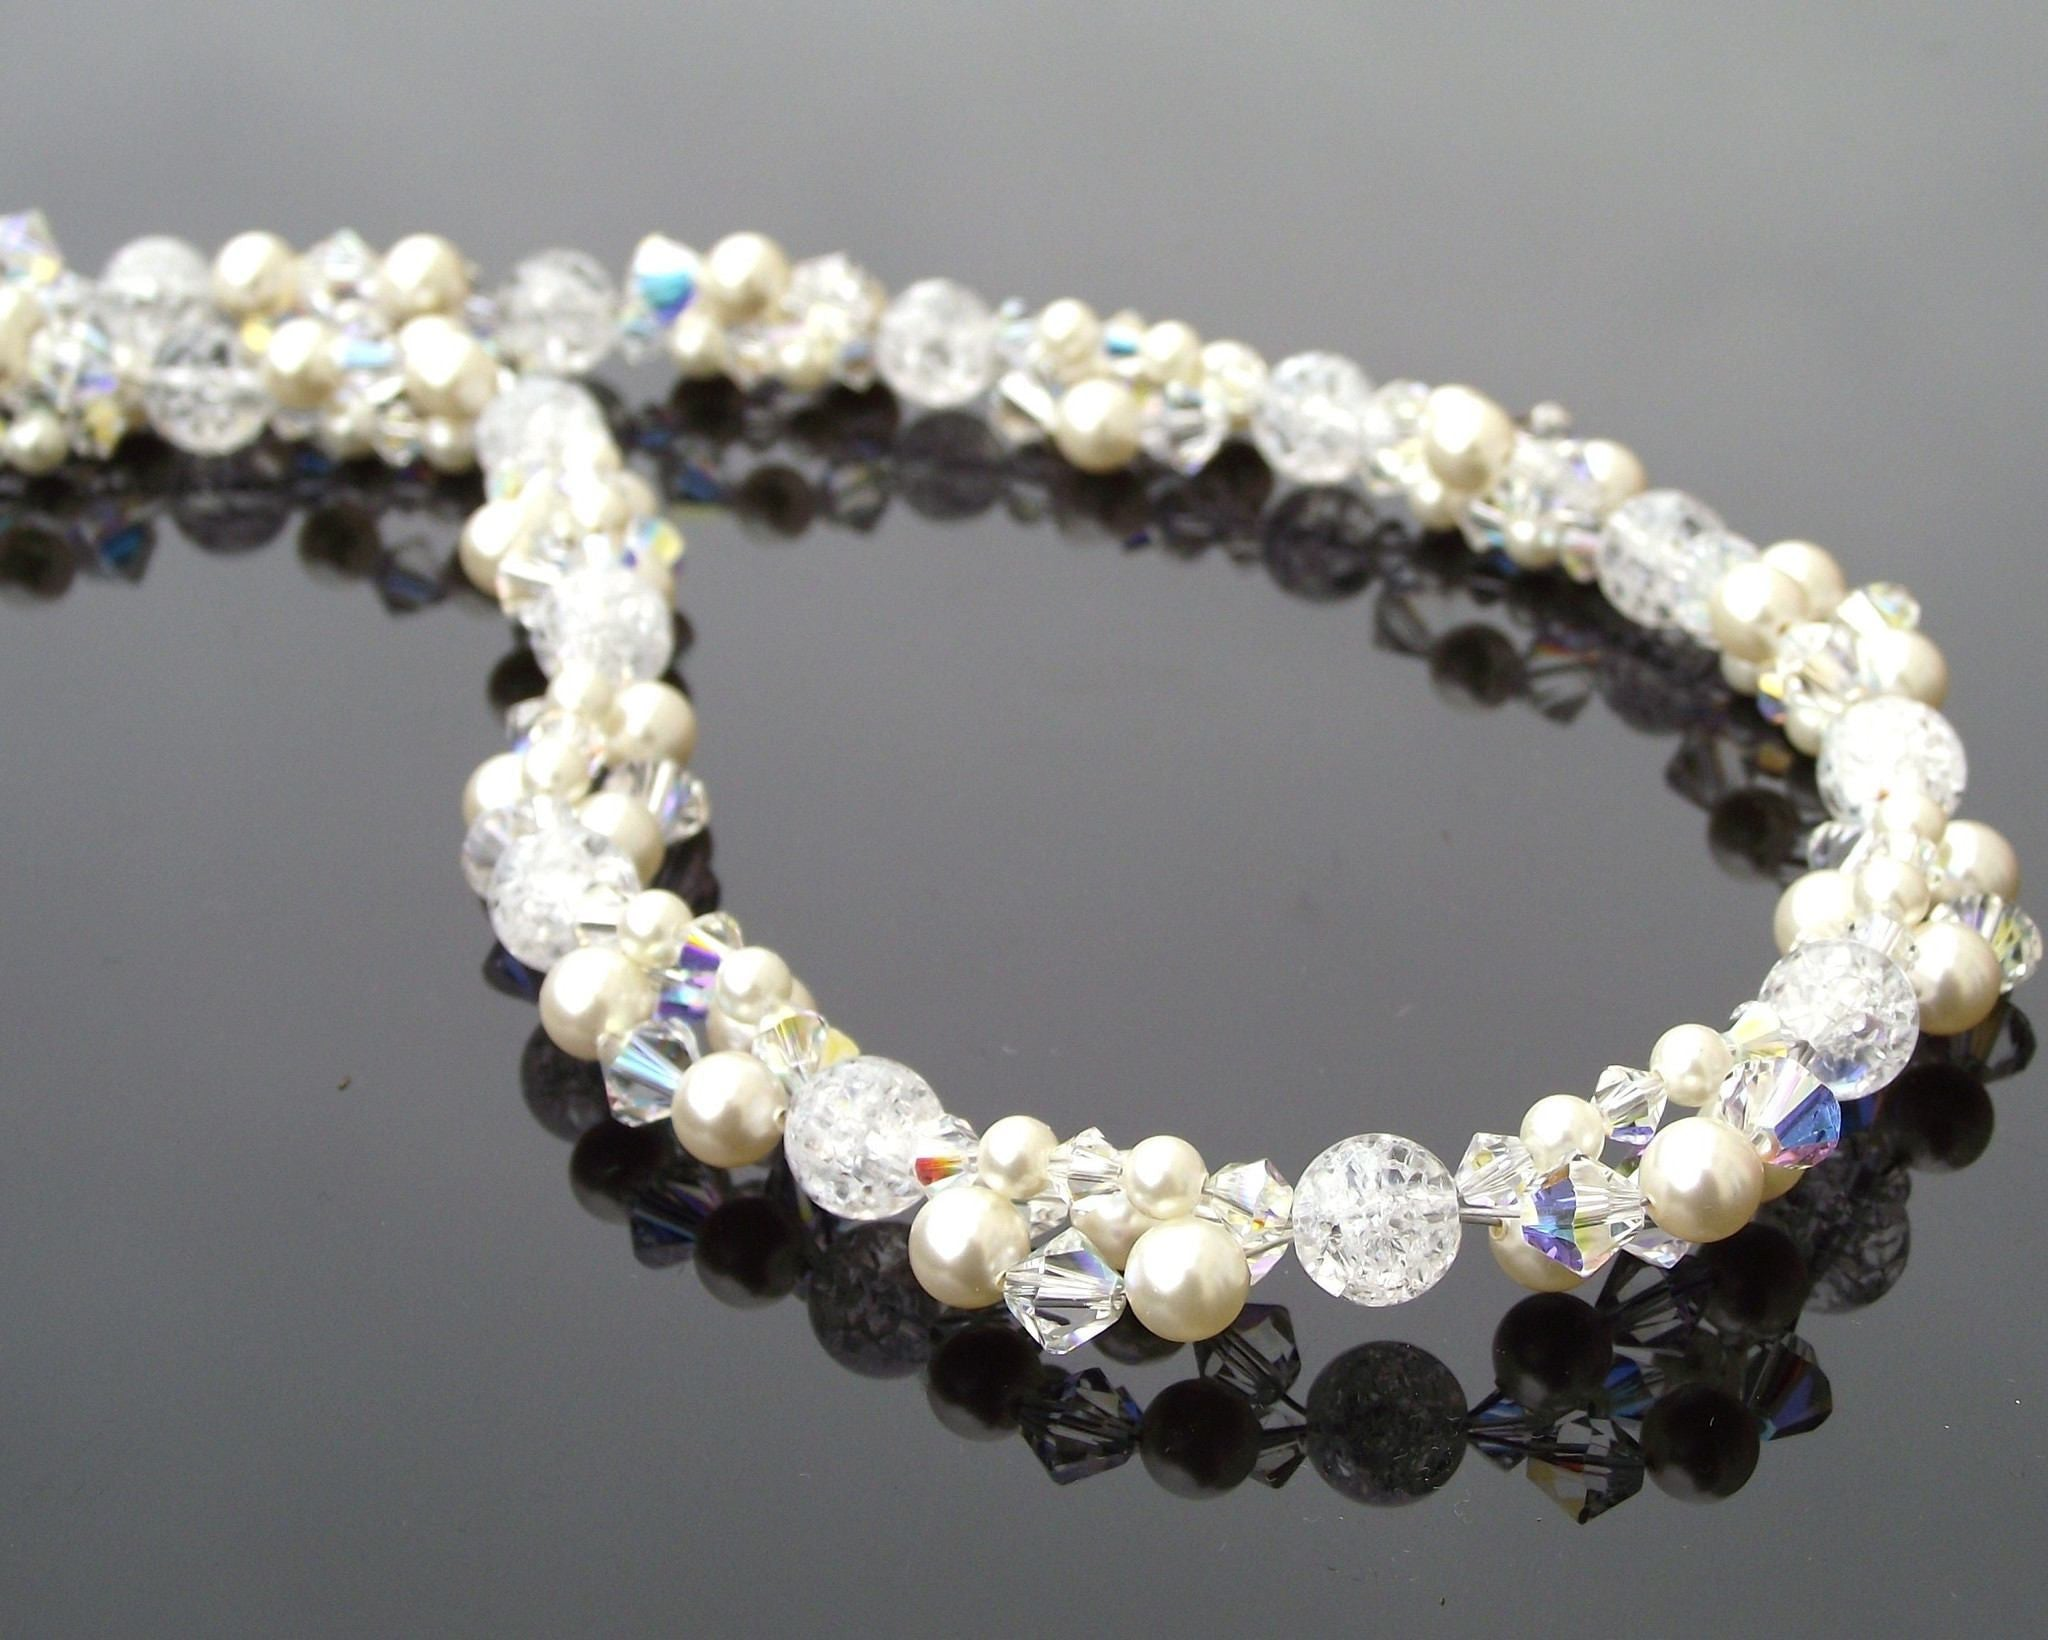 cce306d1bb Wedding Necklace - Pearl & Crystal Cluster Beaded Bridal Necklace, Sicily  ...